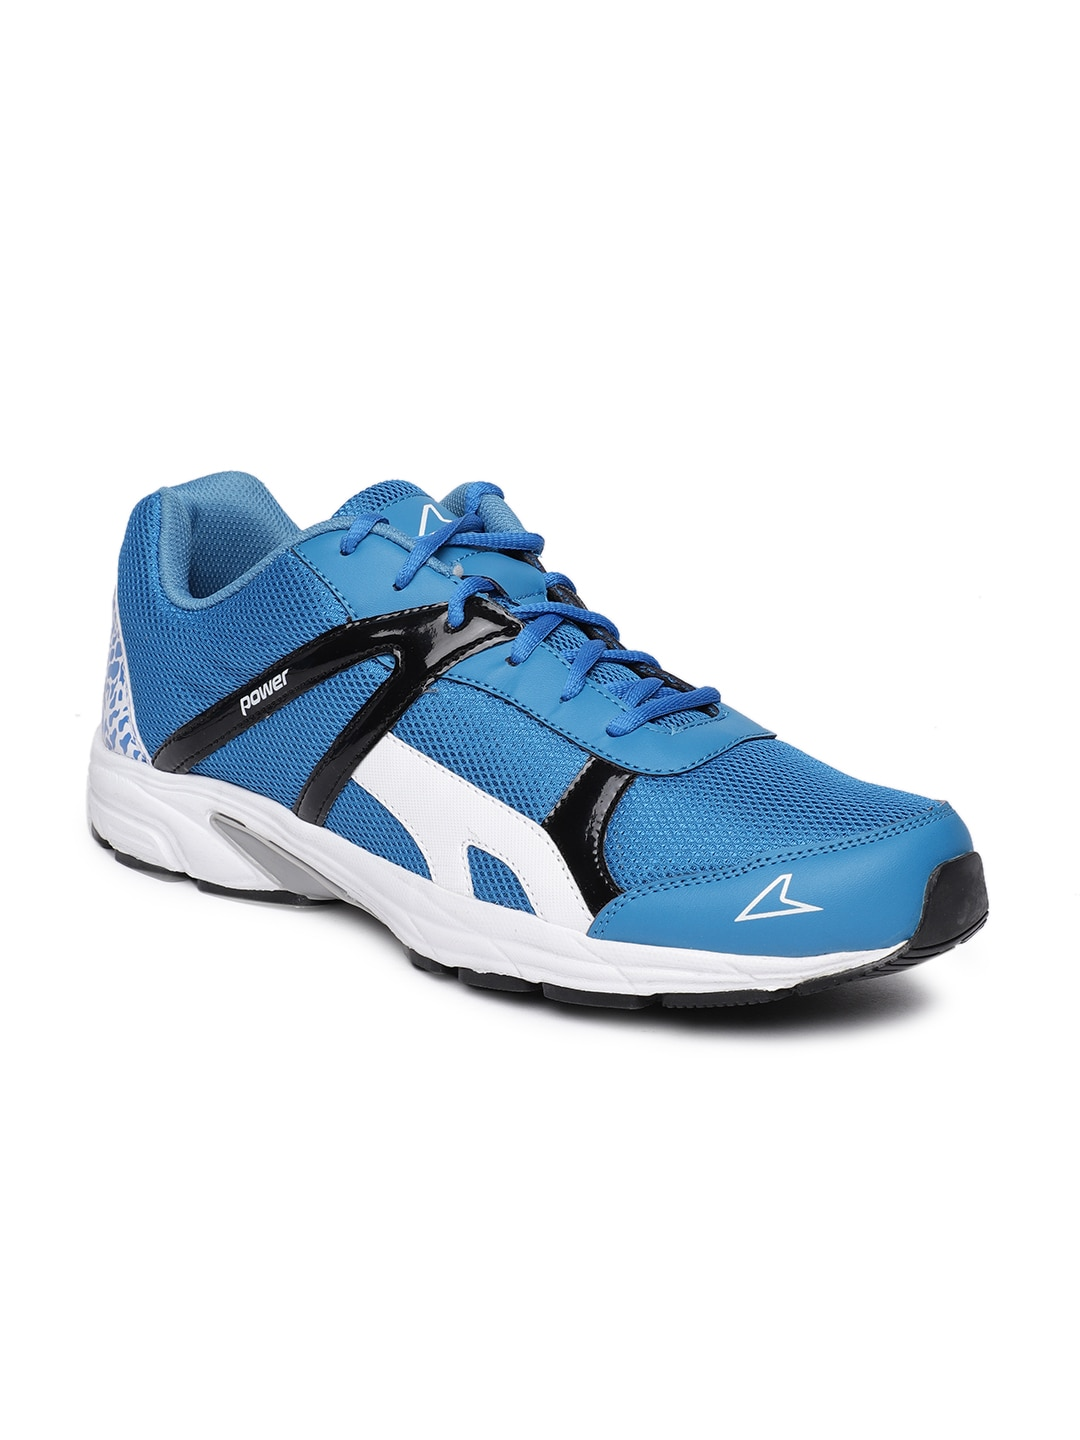 57367d45c842 Bata Power Shoes - Buy Power Shoes Online in India